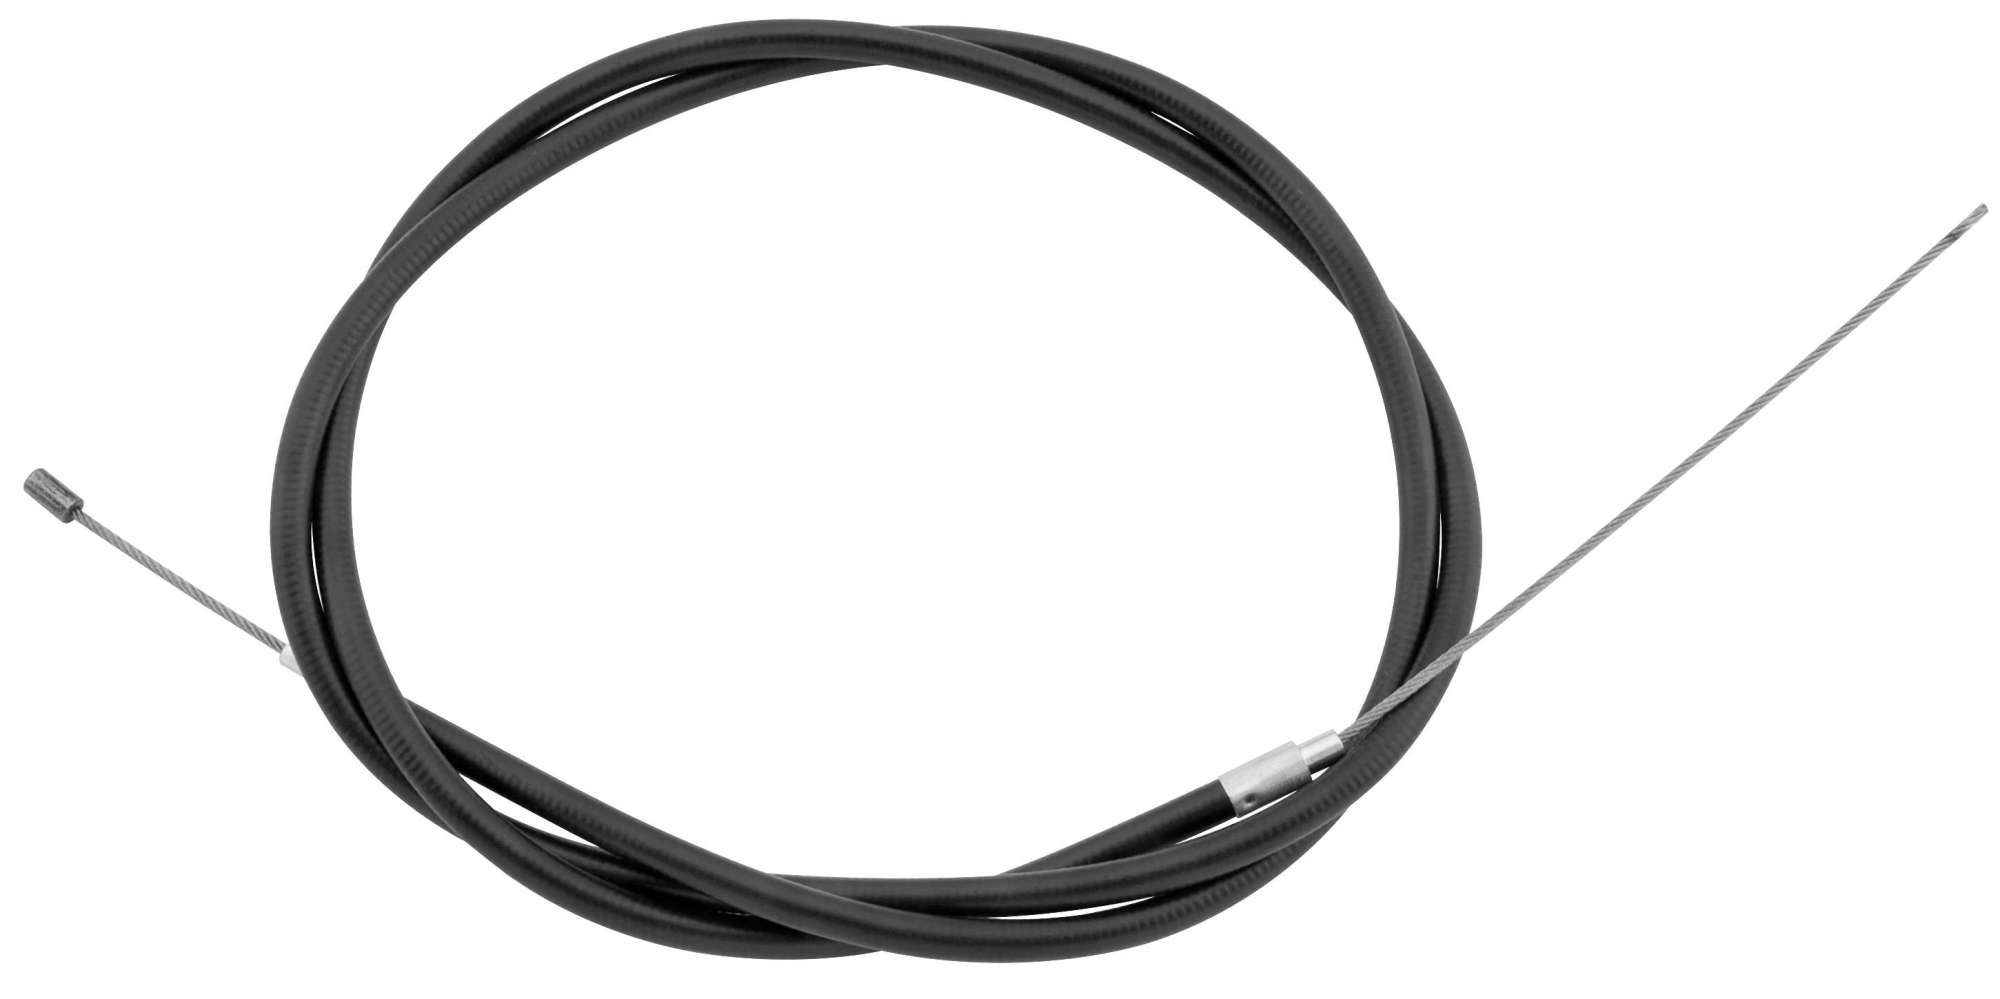 hight resolution of details about barnett performance brake cable 101 31 20001 08